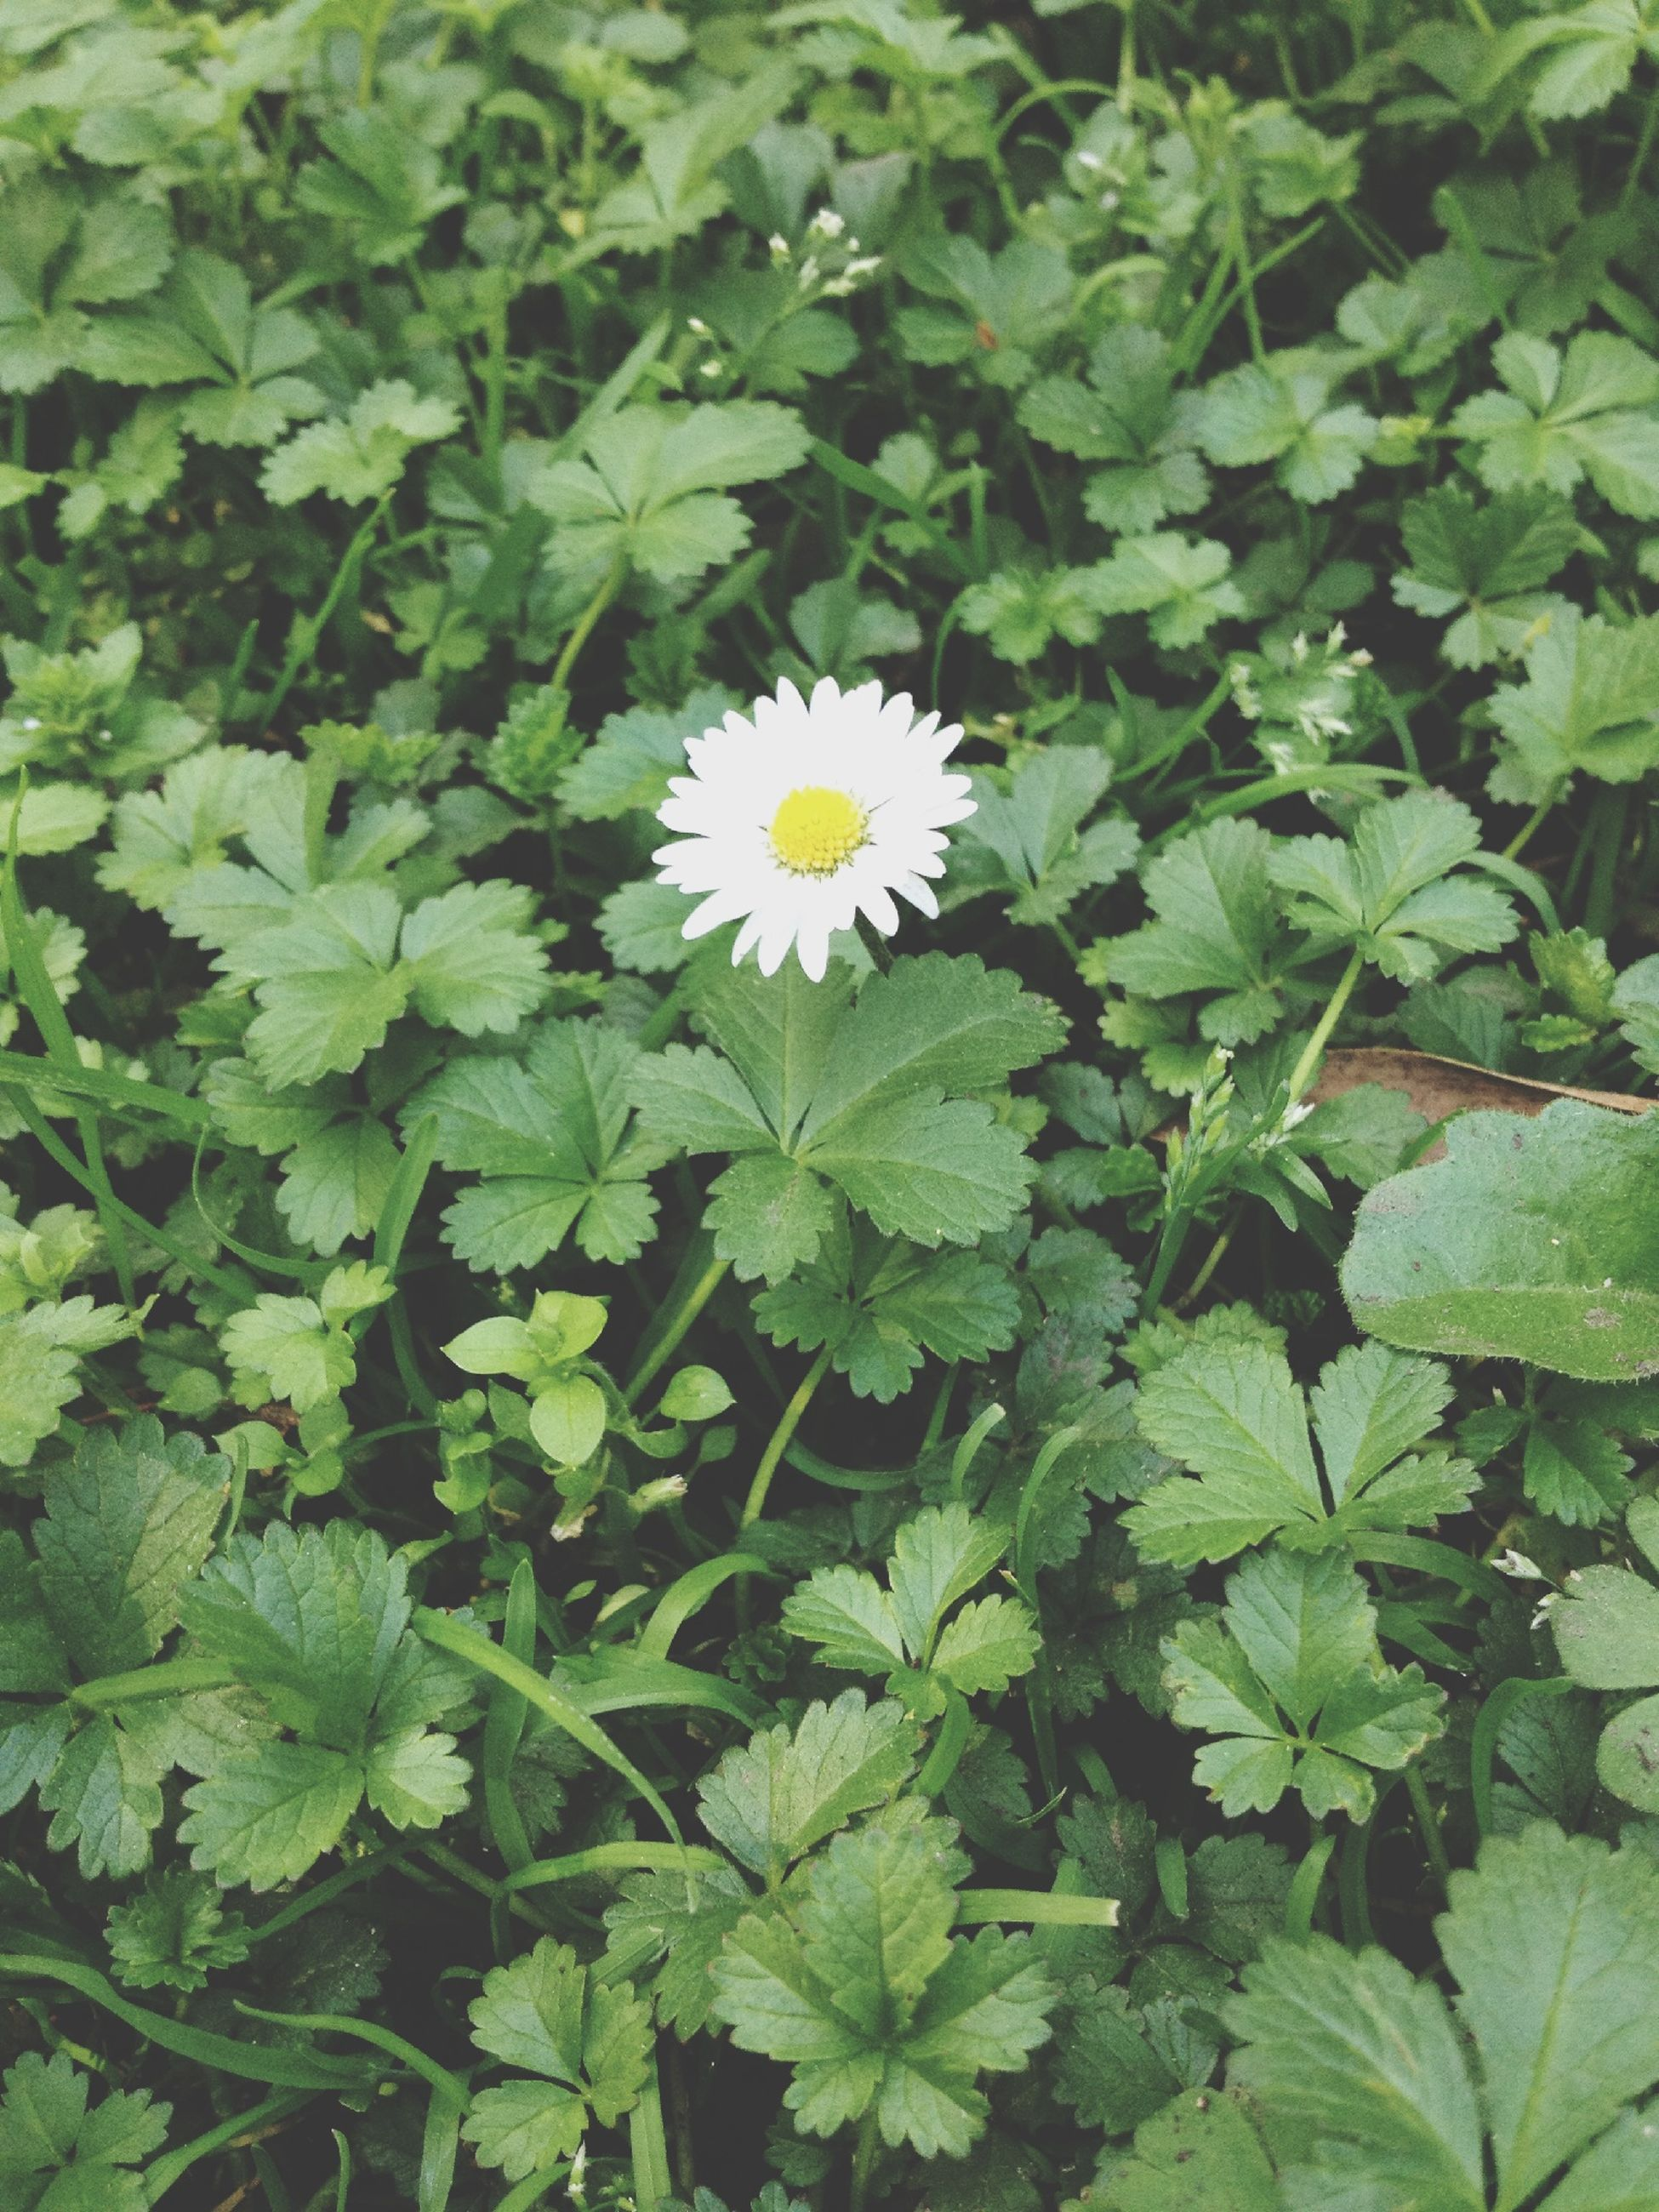 flower, freshness, growth, fragility, leaf, petal, green color, flower head, beauty in nature, plant, white color, blooming, nature, high angle view, in bloom, close-up, day, outdoors, green, daisy